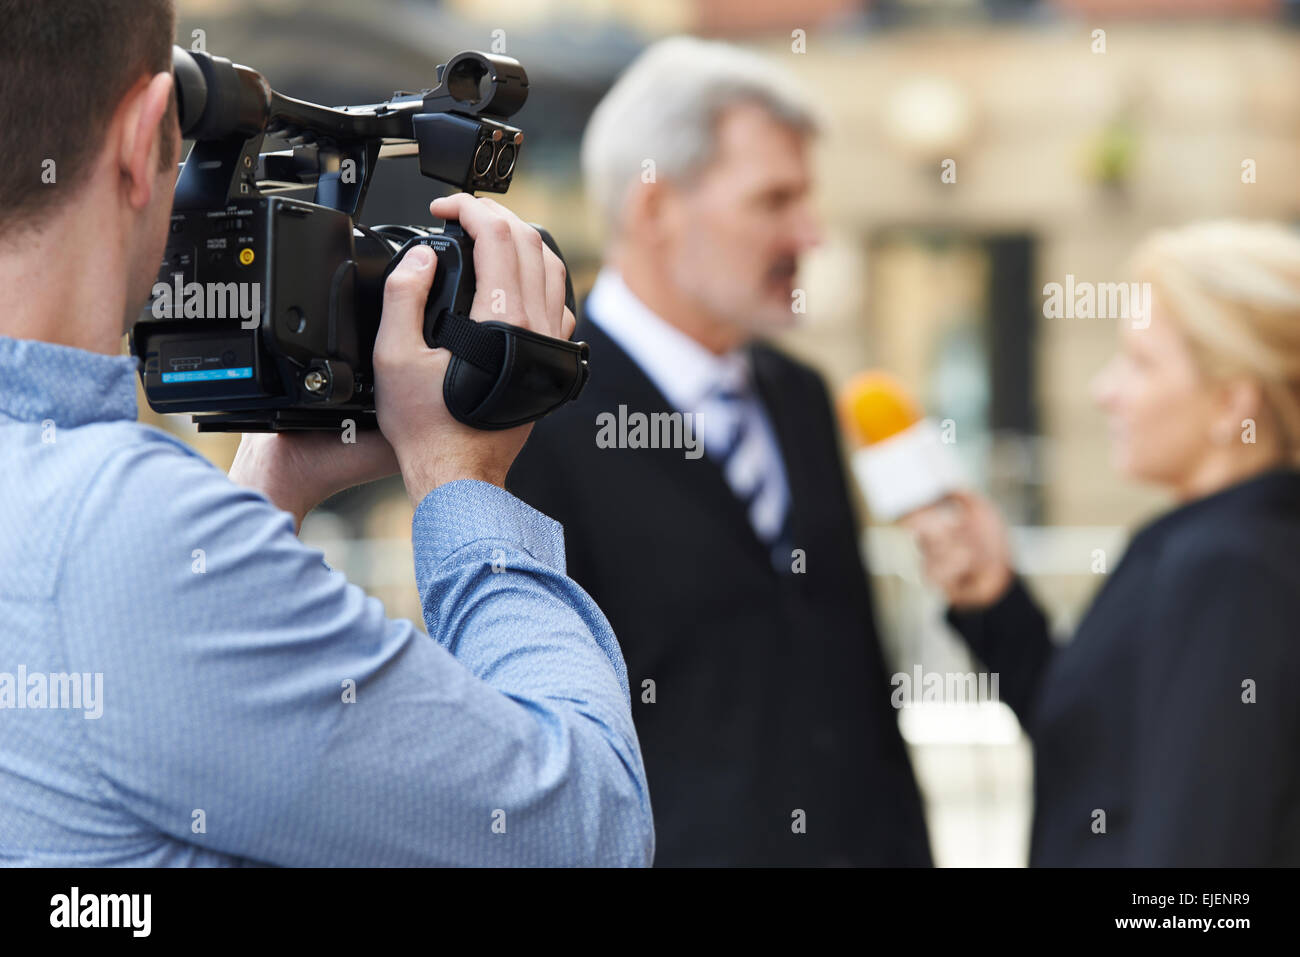 Cameraman Recording Female Journalist Interviewing Businessman - Stock Image